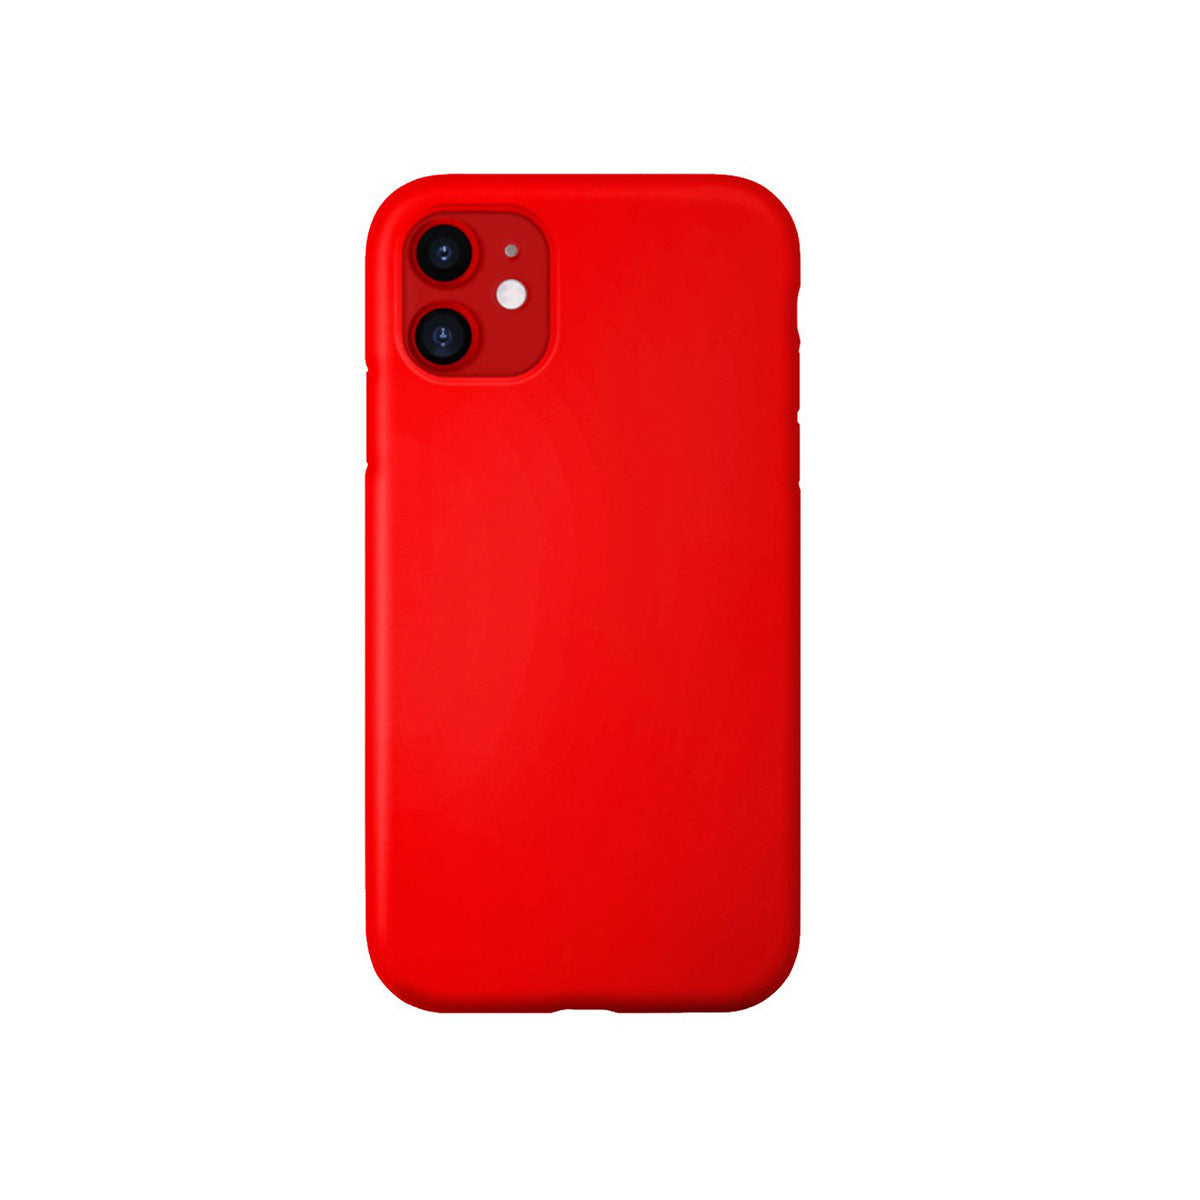 Capa de Smartphone The Kase Anti-Shock Silicone Apple iPhone 12 Pro Max Vermelha